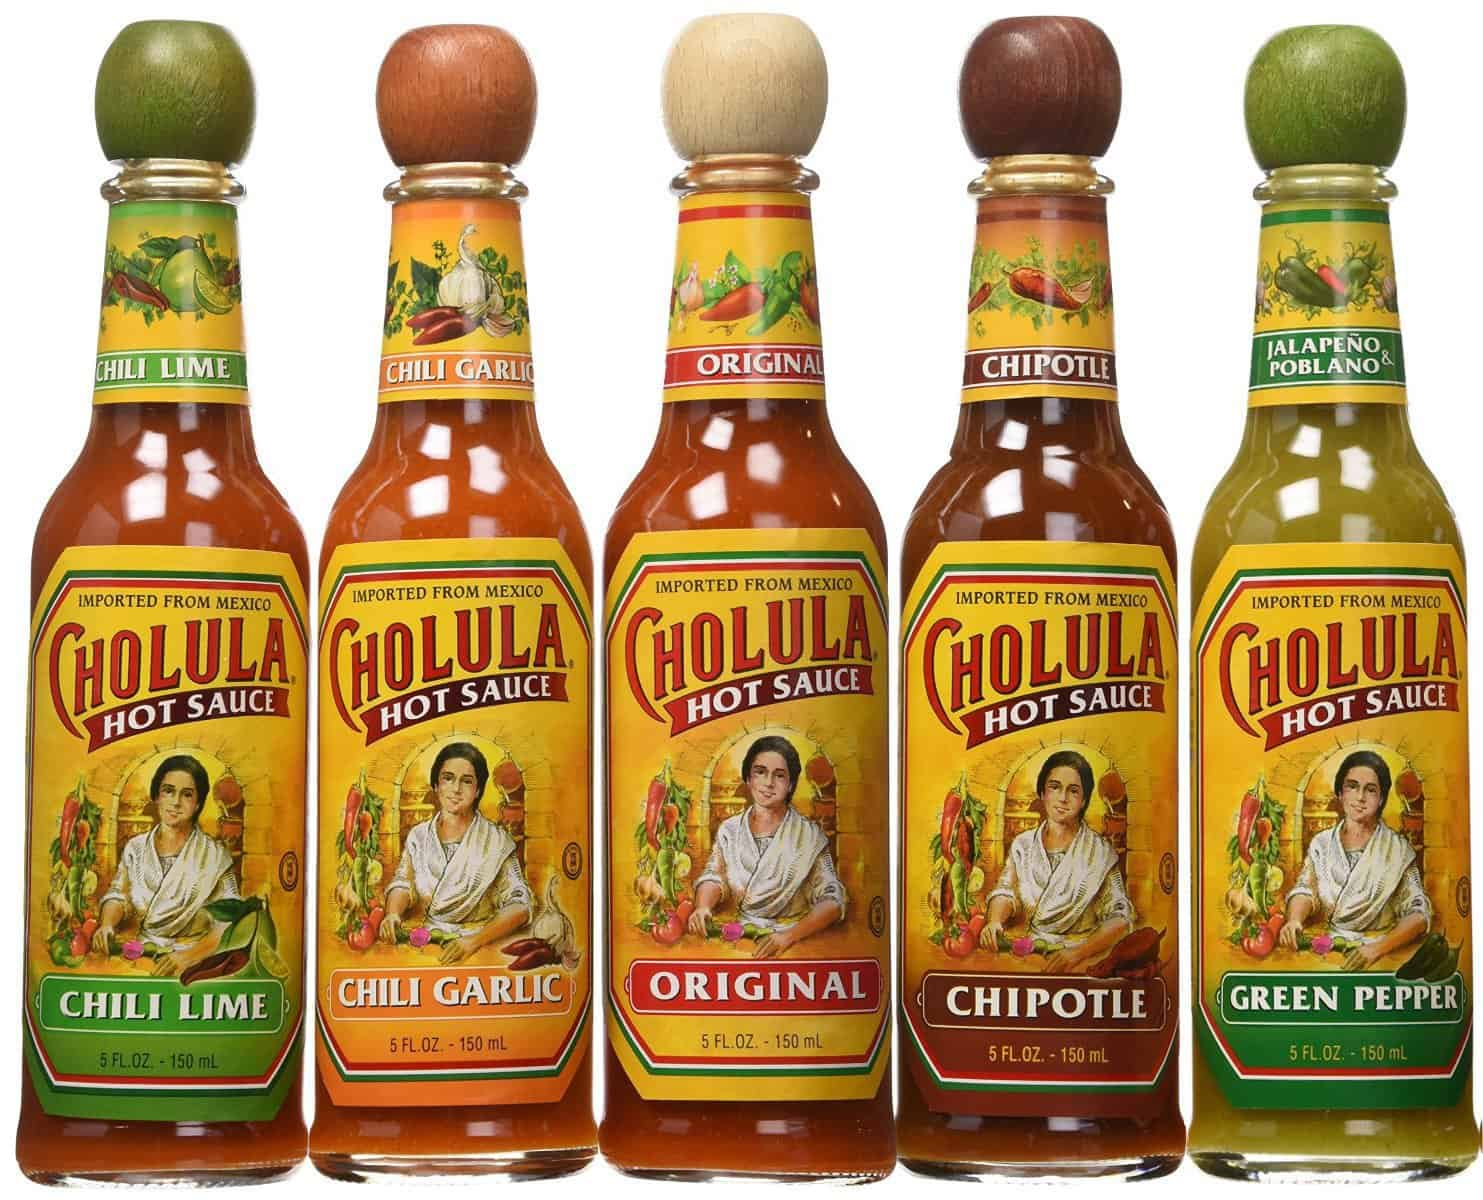 cholula hot sauce gift set